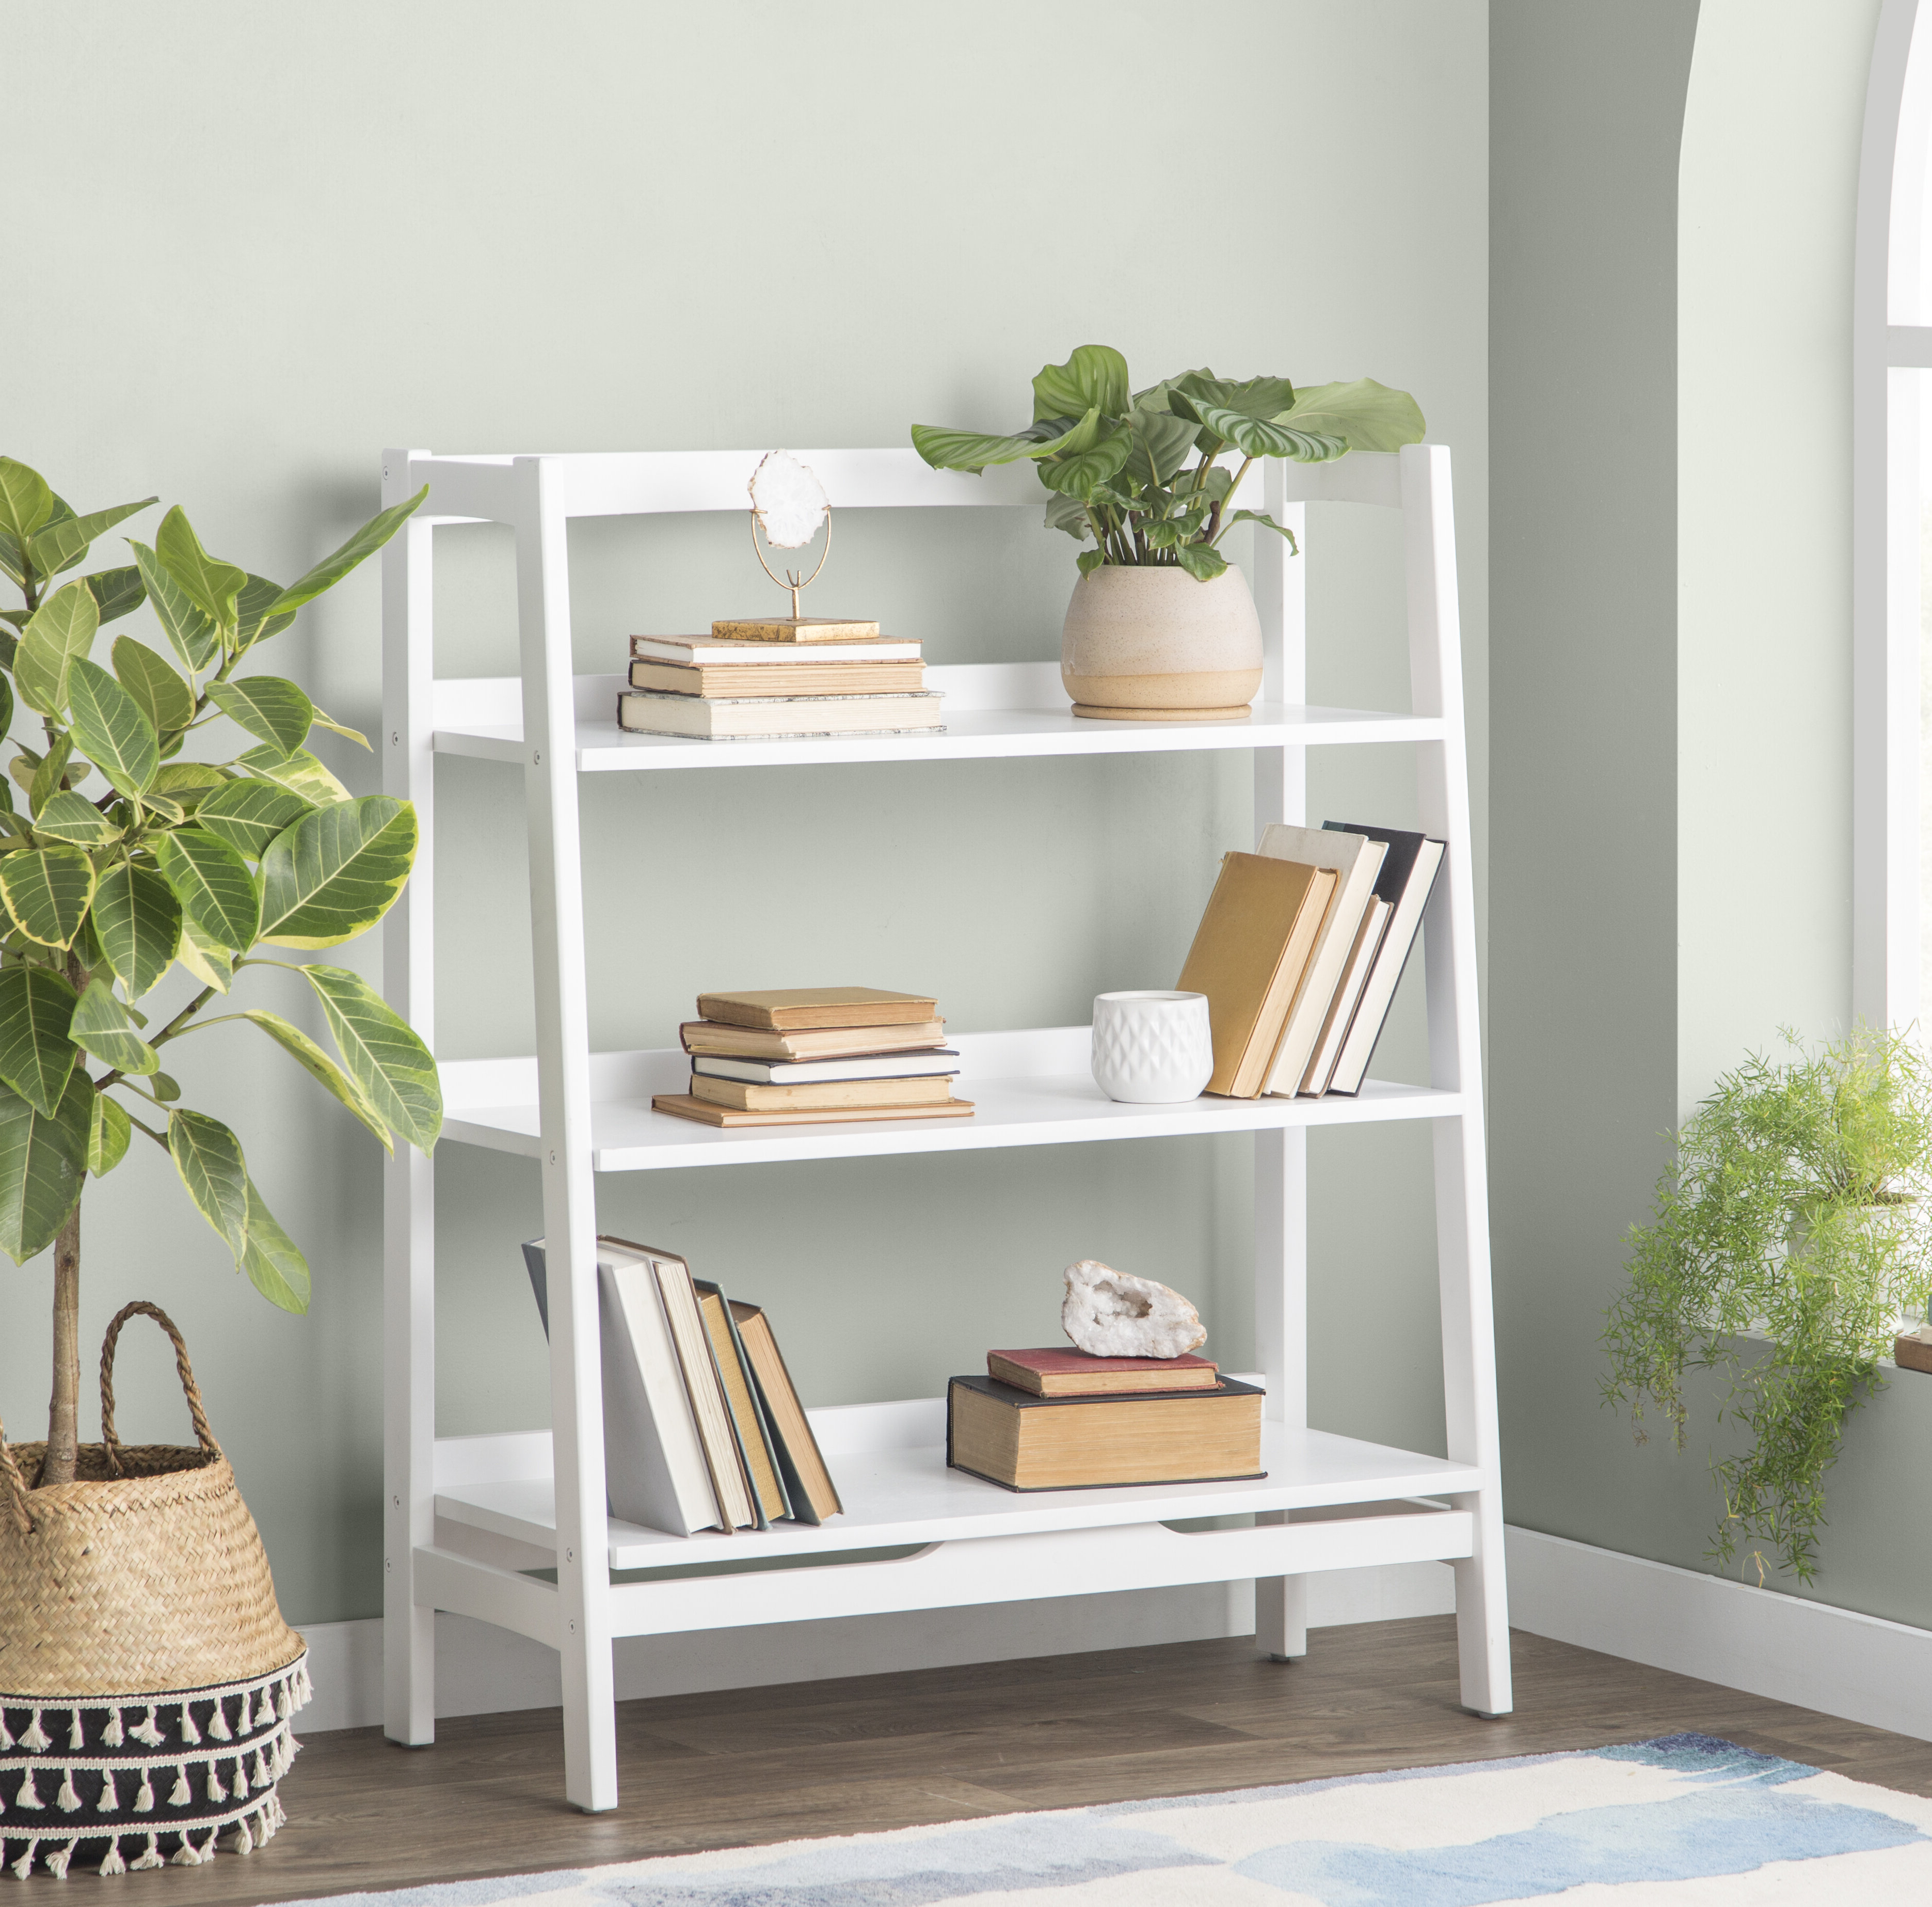 Destiny Etagere Bookcases Pertaining To Favorite Destiny Etagere Bookcase (View 2 of 20)